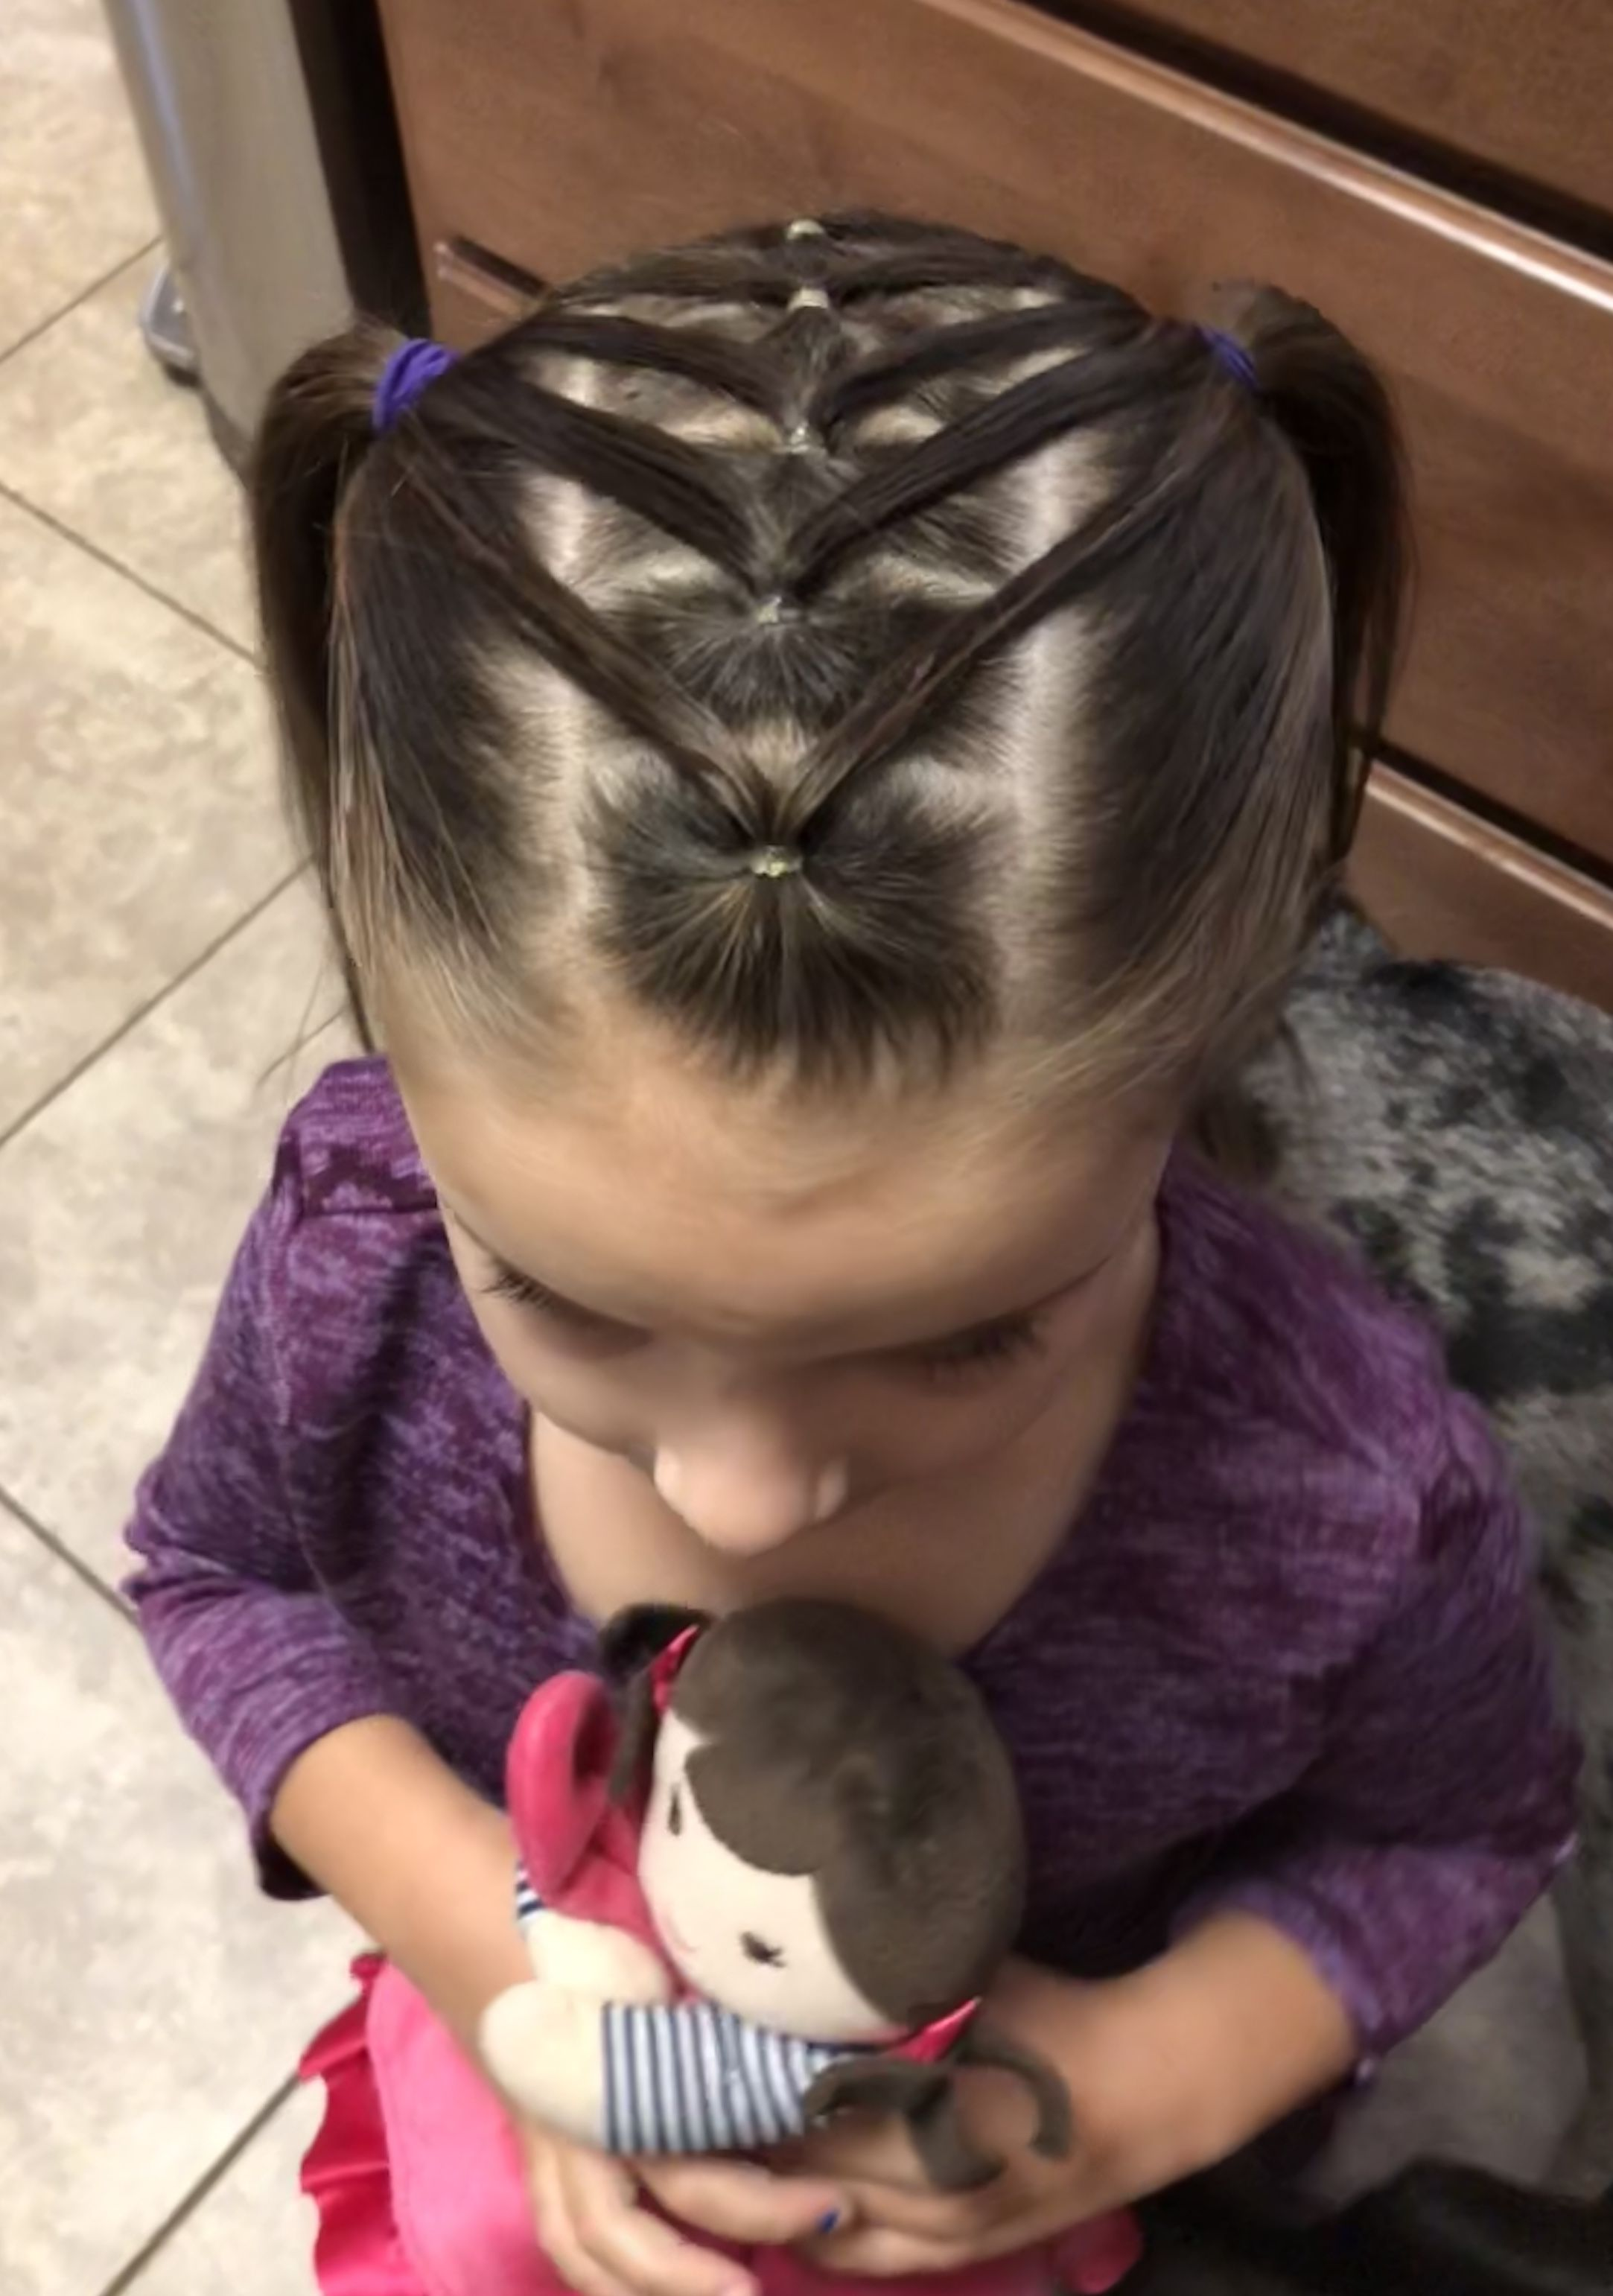 Pin By Mili On Hair Styles Little Girl Hairstyles Baby Hairstyles Hair Styles